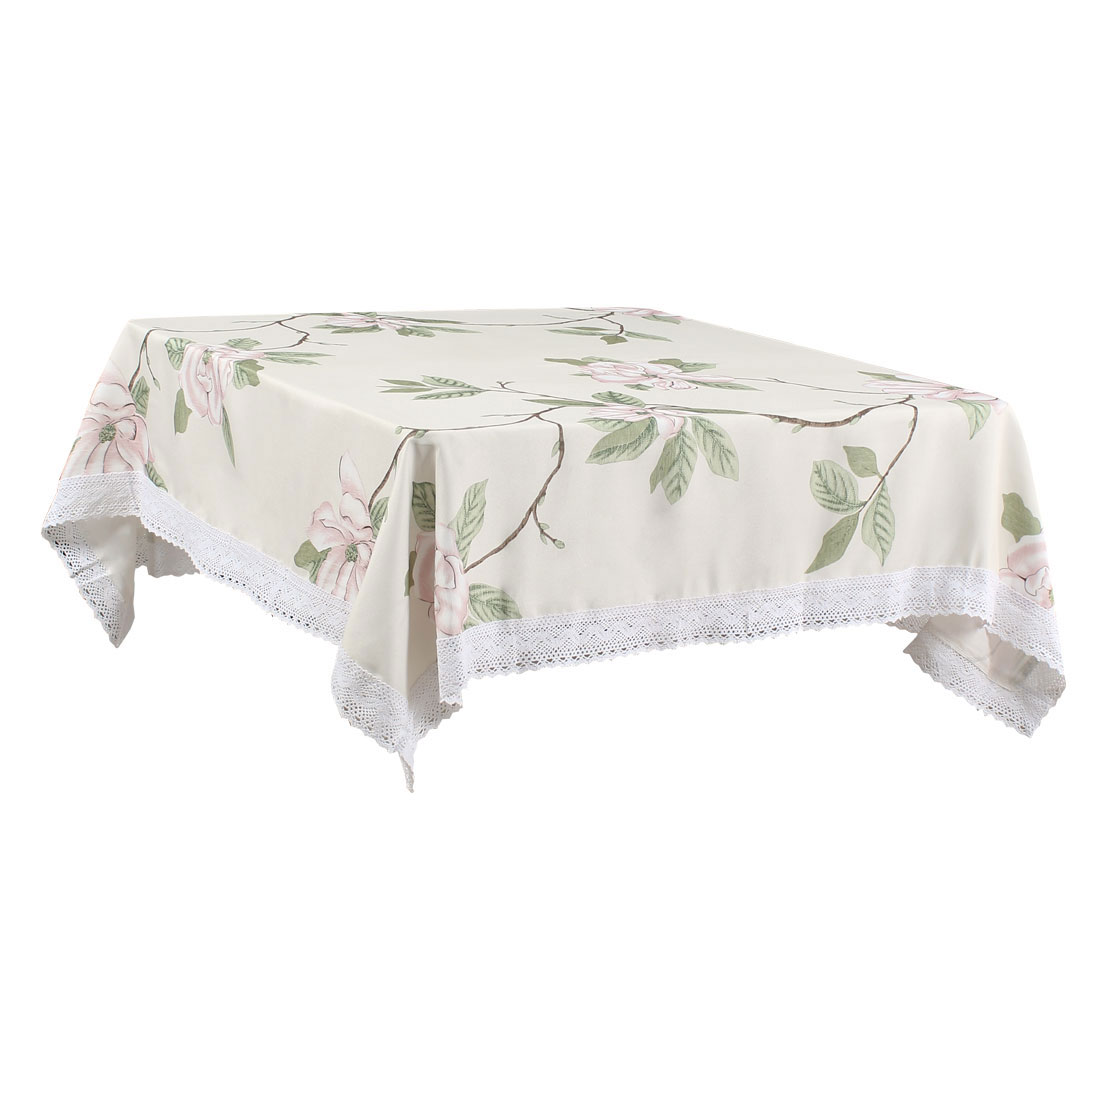 "Tablecloth Polyester Table Cover Oil Stain Resistant Table Cloth, 39"" x 59"", #7"